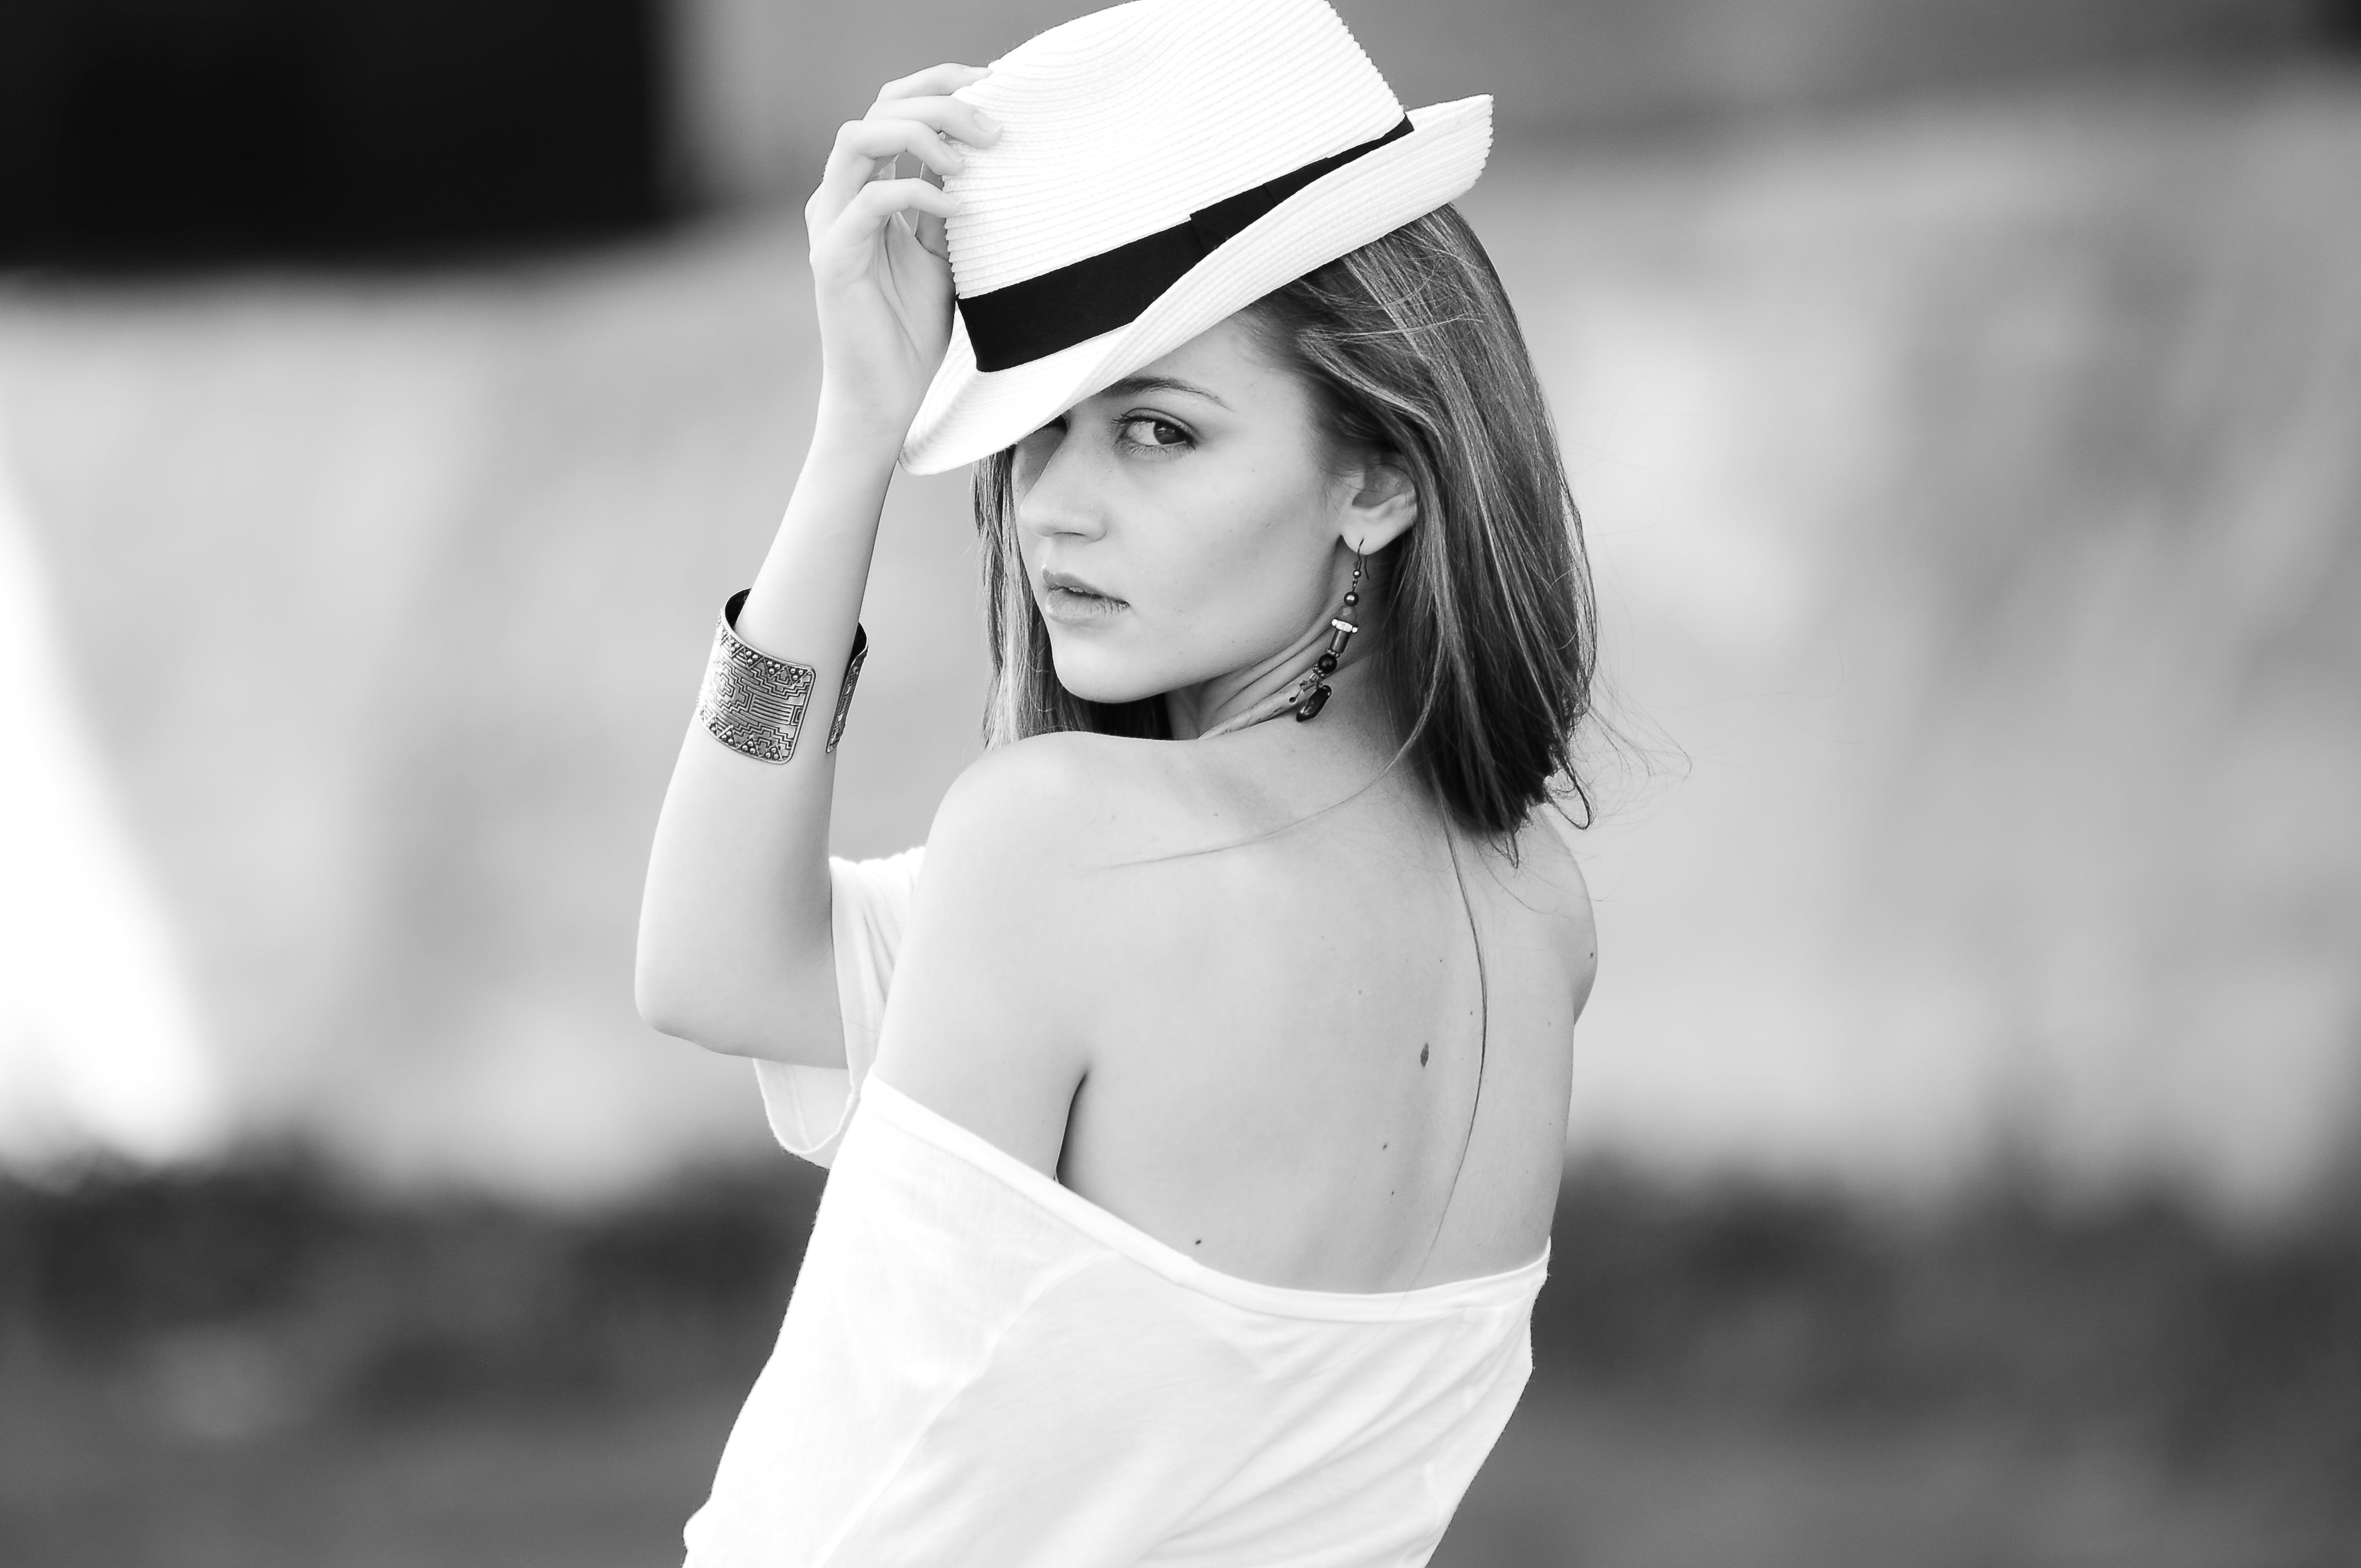 Grayscale Photography of Woman Holding Fedora Hat